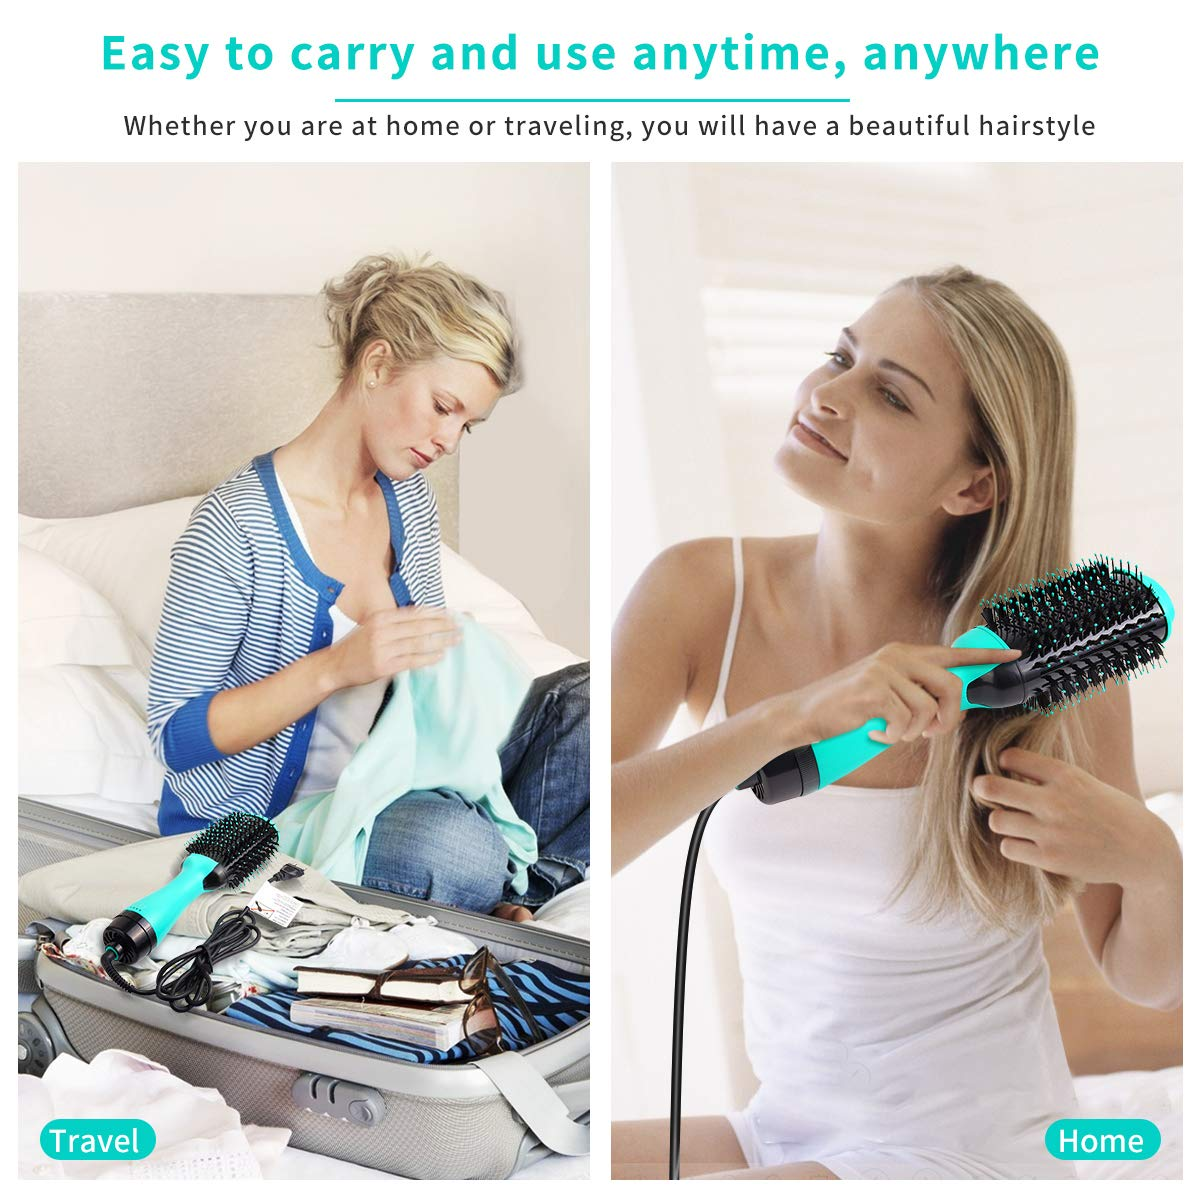 Hot Air Brush, Hair Dryer Brush, 3 Modes Blow Dryer Brush & Volumizer, Negative Ion Hair Brush for Drying, Styling, Straightening and Curling based on 110V : Beauty